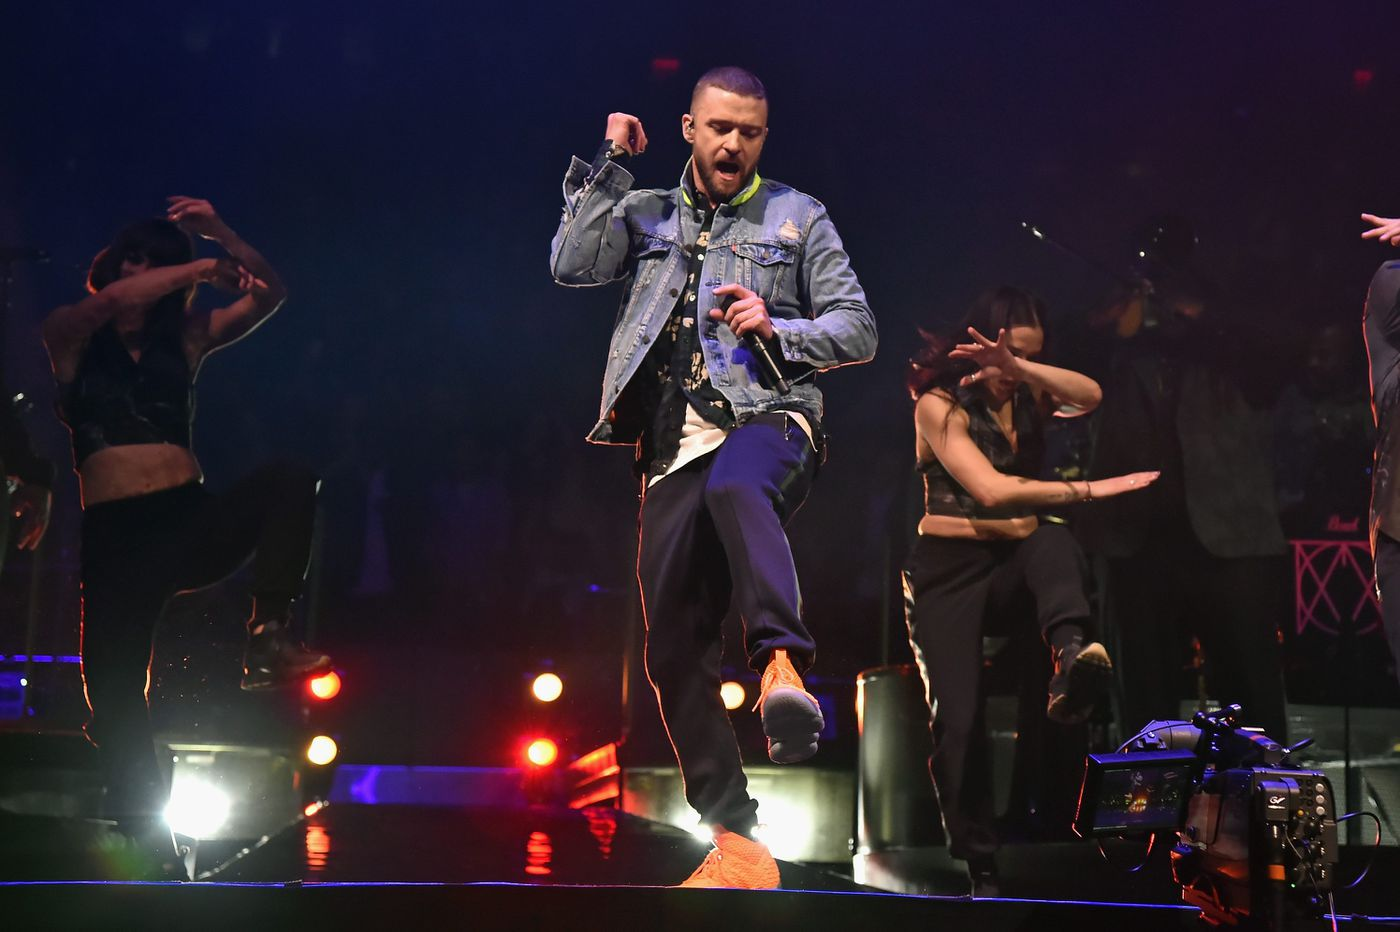 Justin Timberlake plays the hits (and 'The Fresh Prince' theme) at the Wells Fargo Center